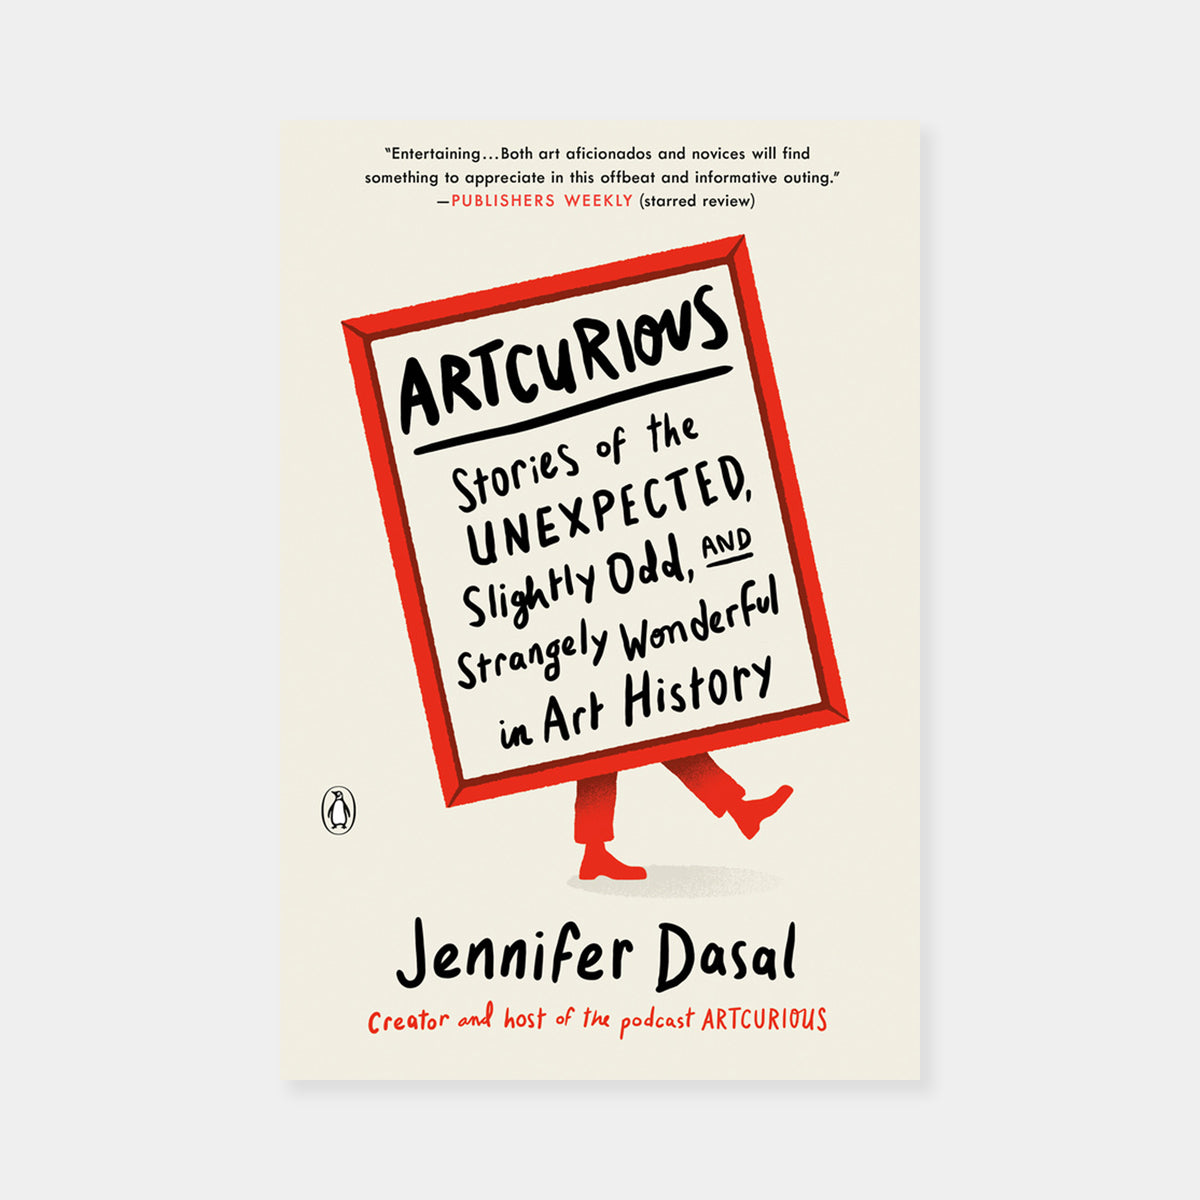 Artsuite - Jennifer Dasal - ArtCurious - Stories of the Unexpected, Slightly Odd, and Strangely Wonderful in Art History , she goes even deeper on the questions that have fascinated her listeners and explores fresh mysteries, including seven chapters of all-new material.